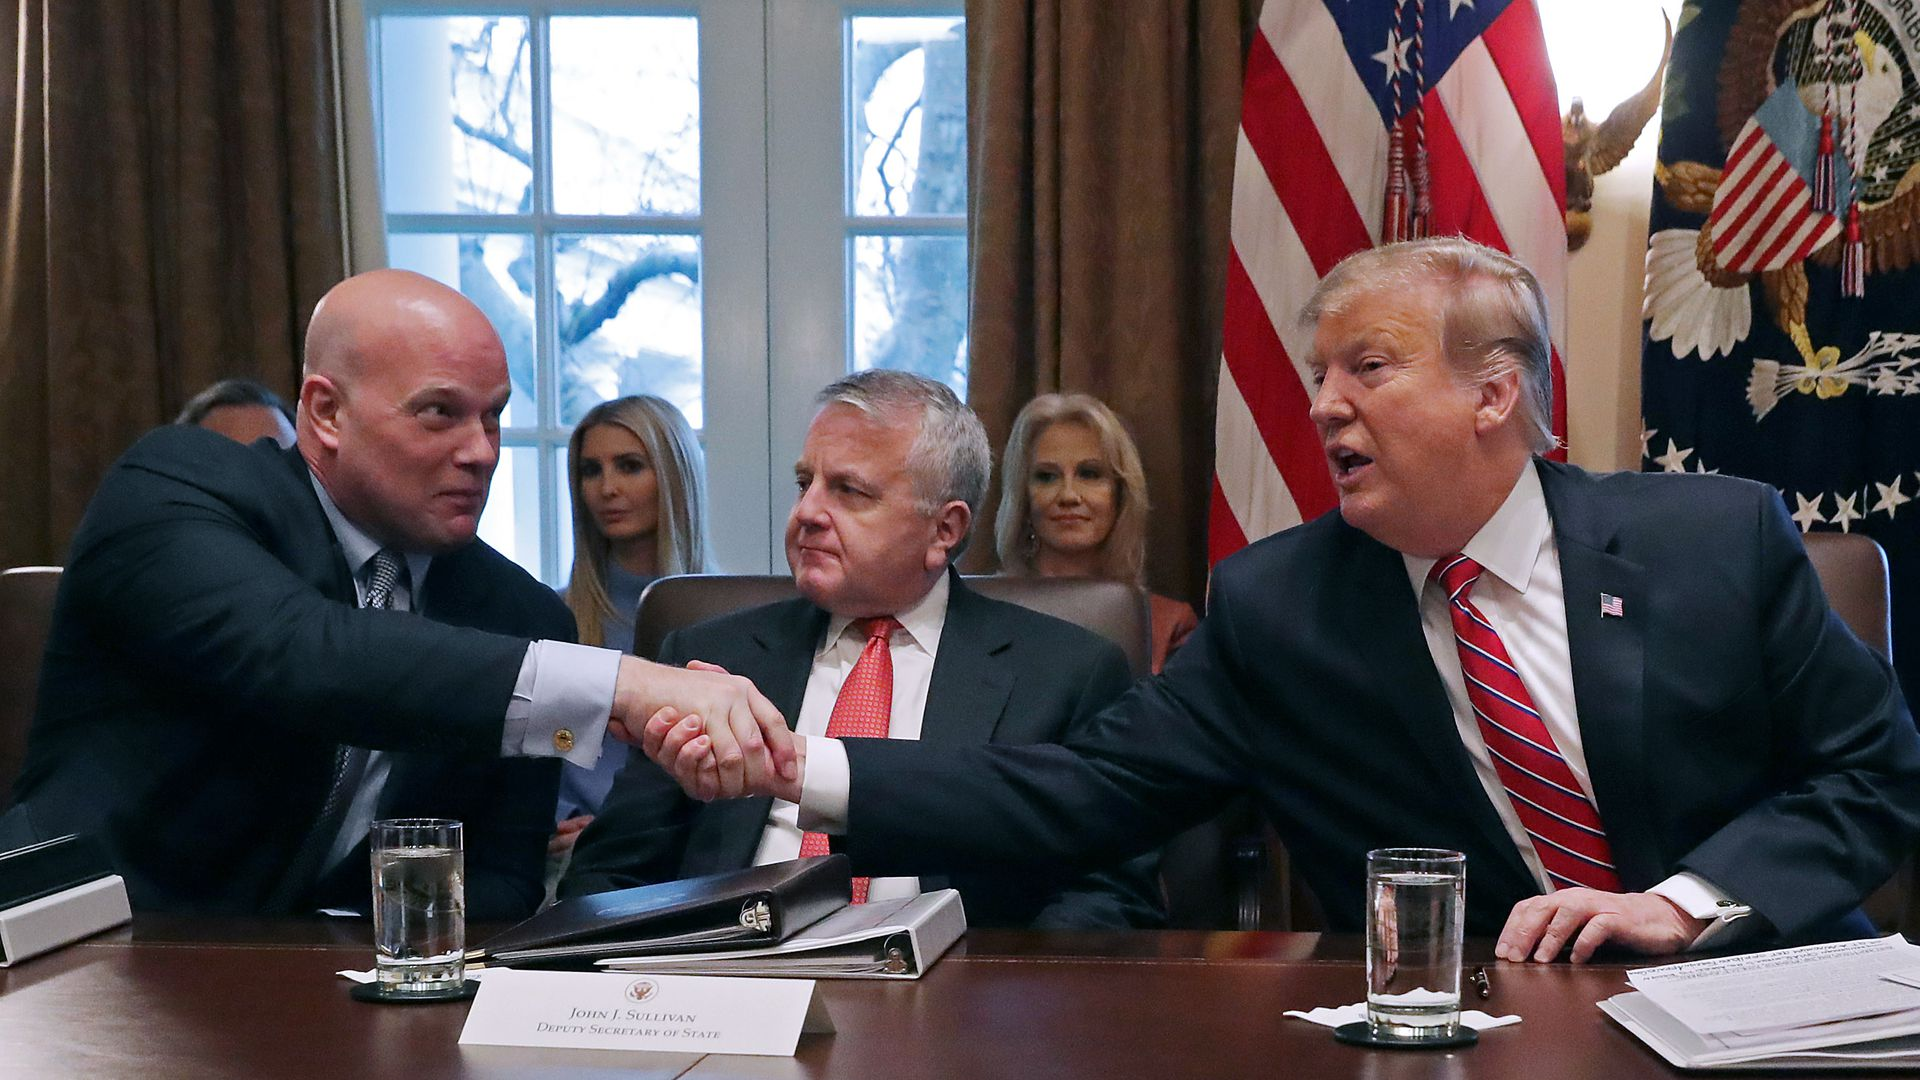 Report: Trump asked Matthew Whitaker to appoint ally to lead Cohen probe